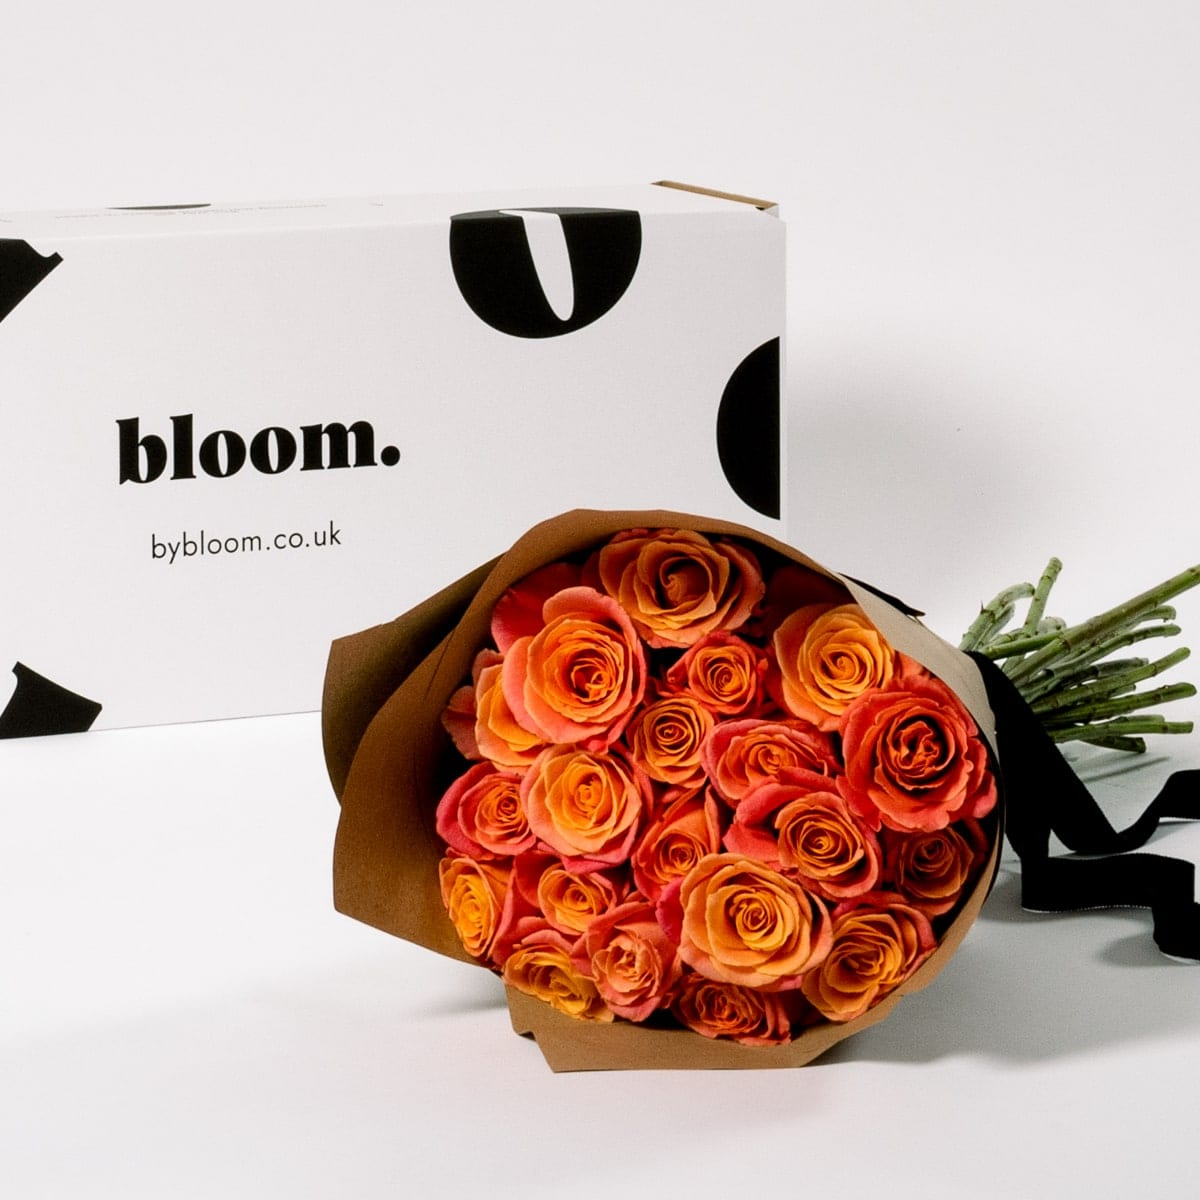 Bloom Flower Delivery | Coral Sunset Roses